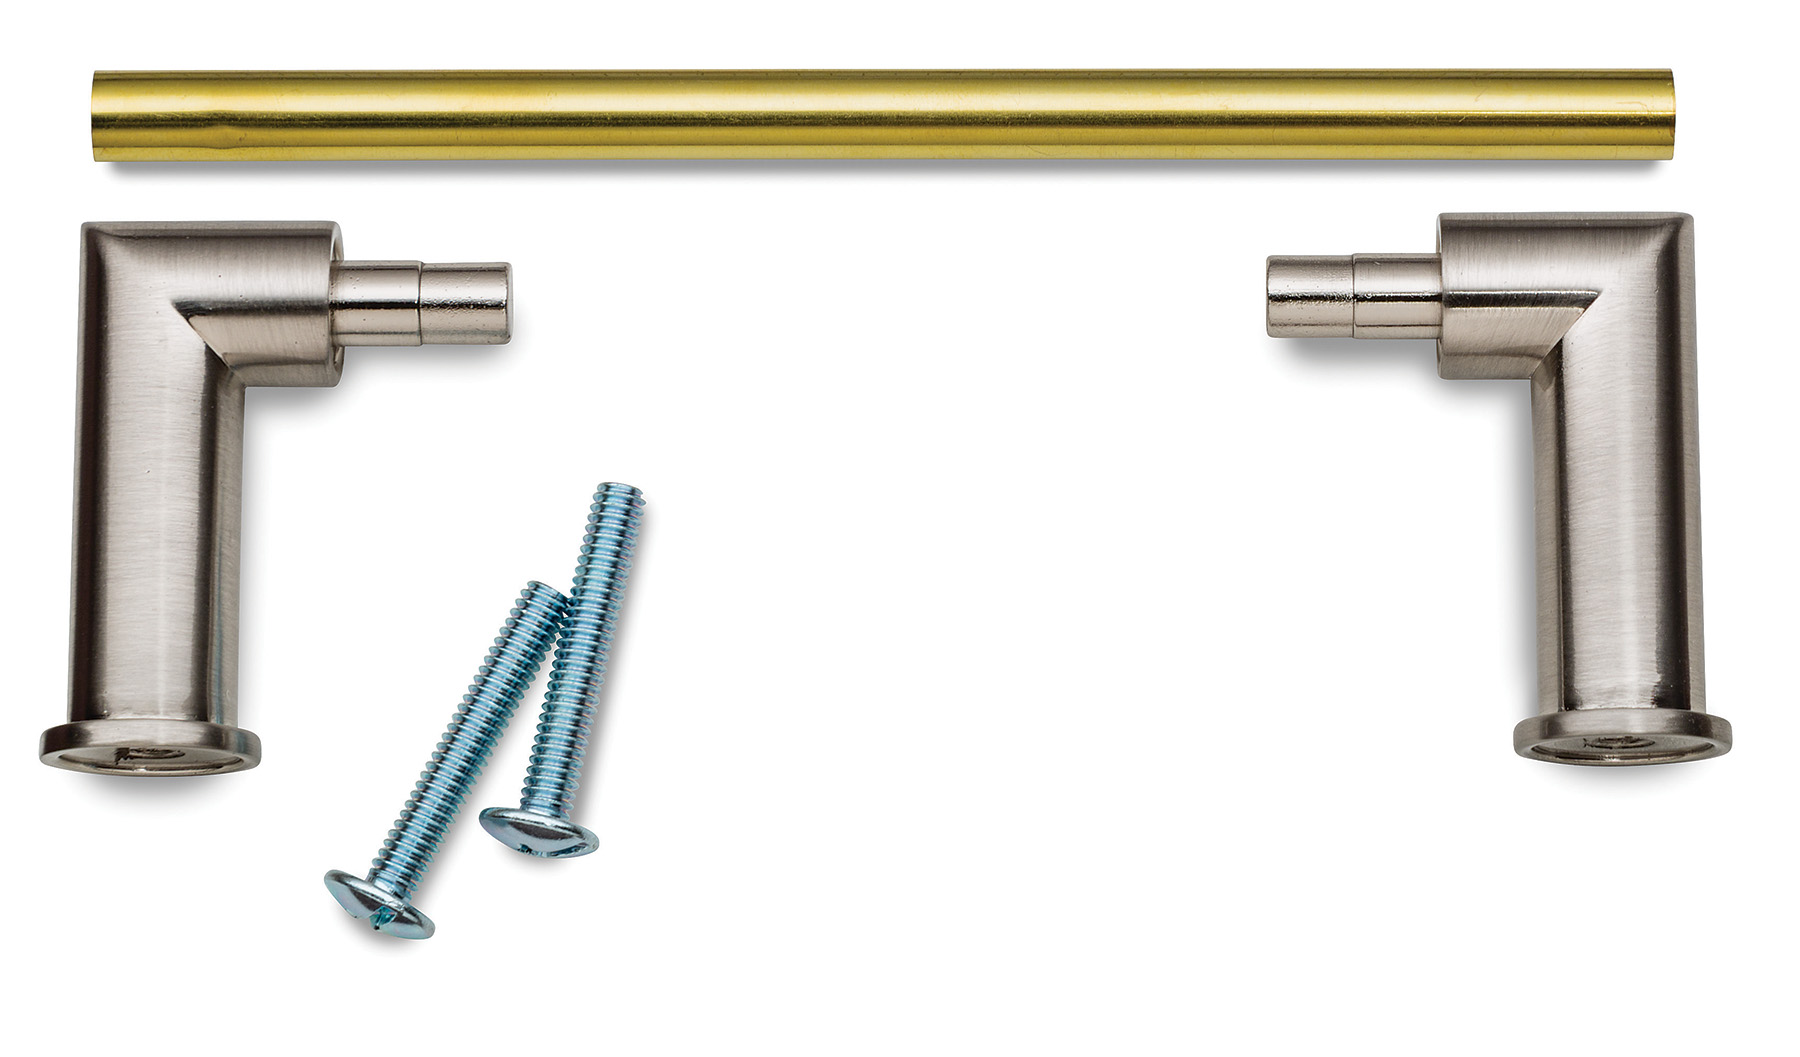 Rockler Introduces Hardware Kits That Let Turners Craft Custom Cabinet Knobs and Pulls